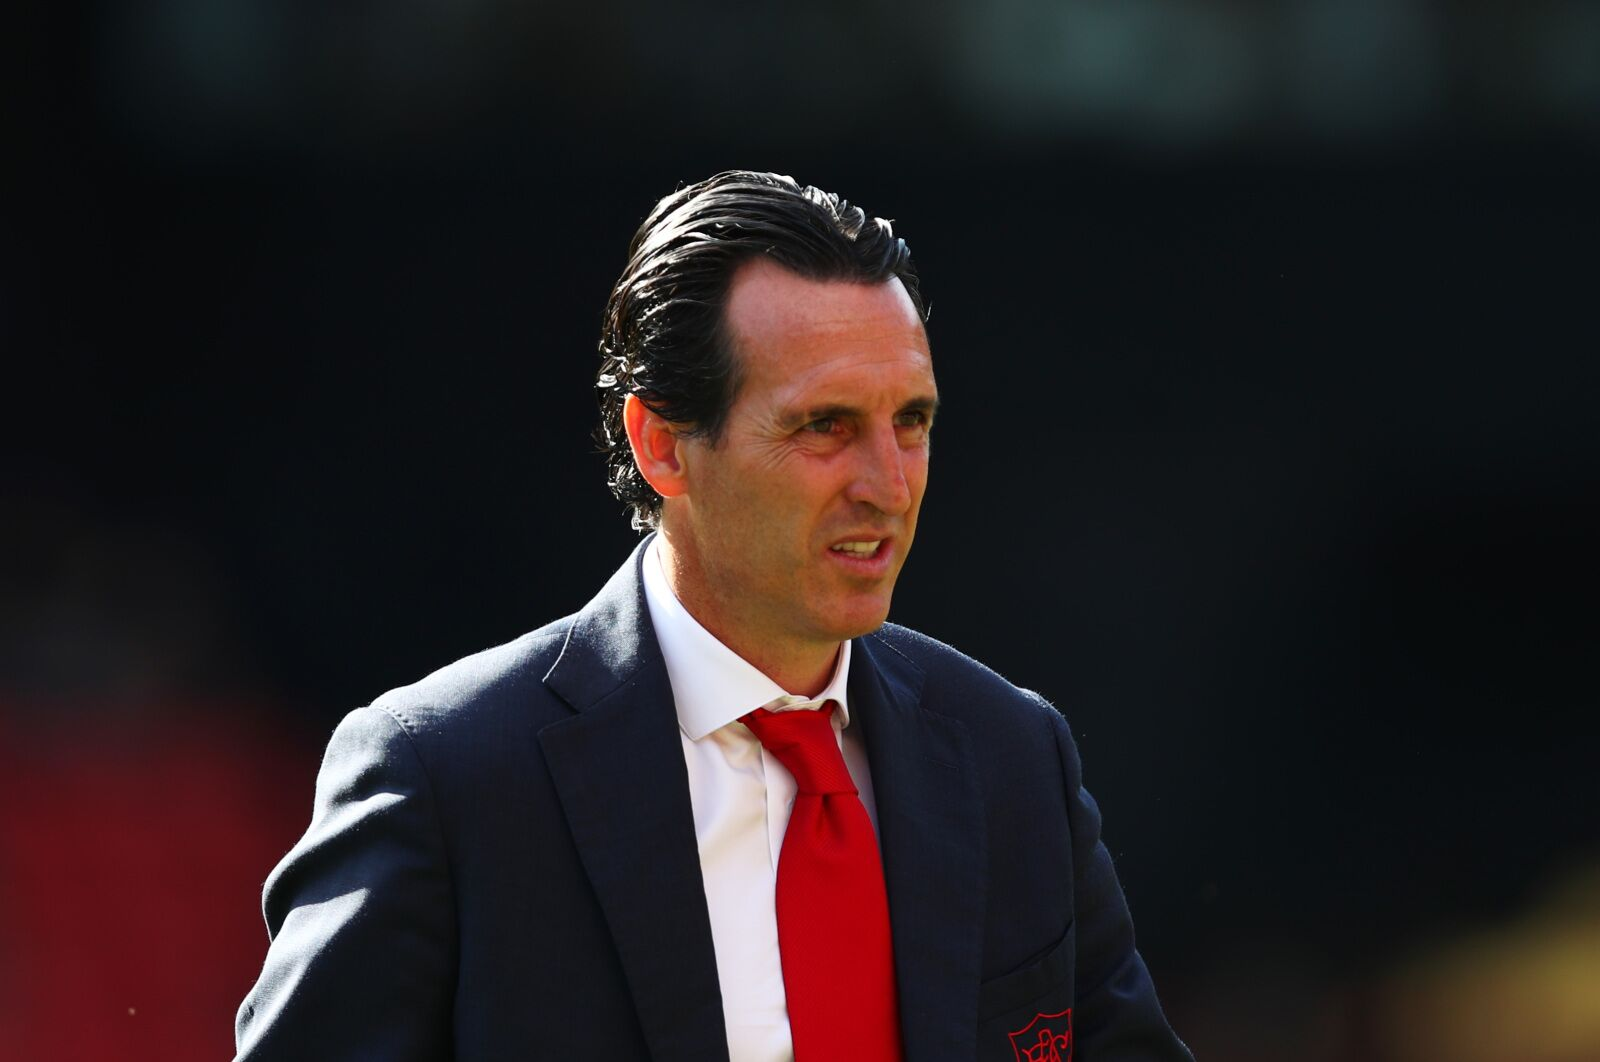 Arsenal: Third in the league, but Emery still playing the wrong side